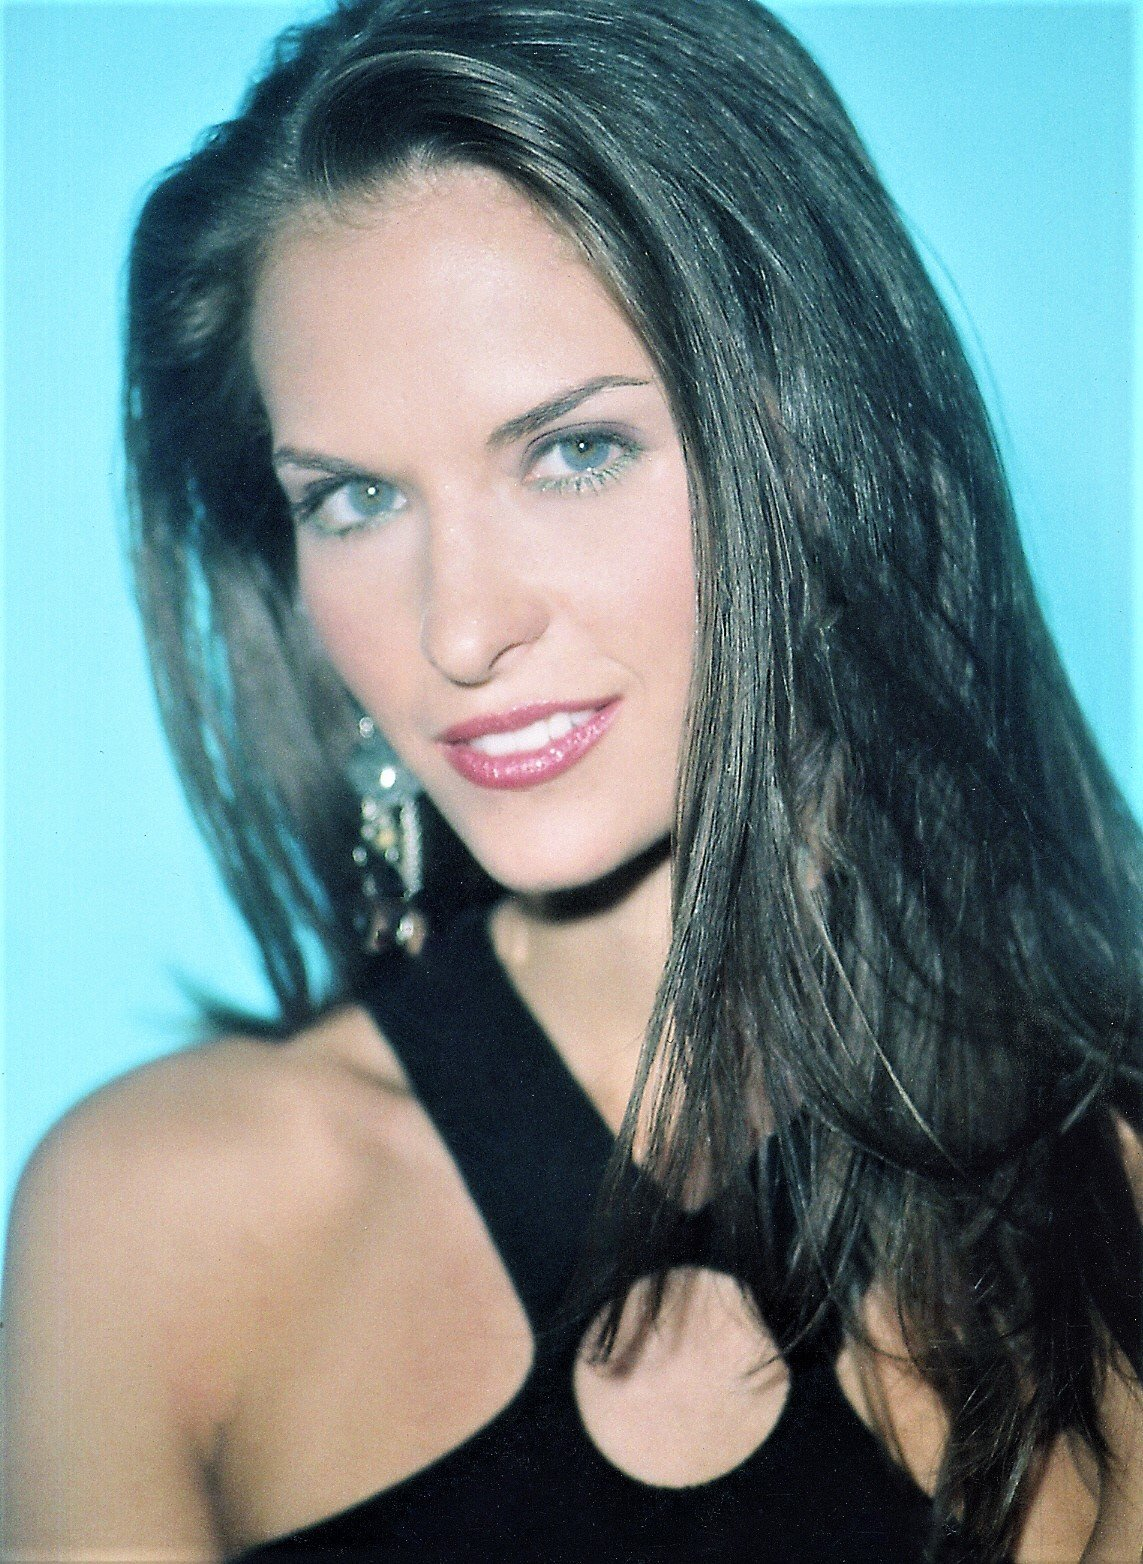 MISS SC-USA - JAMIE HILL  She was TOP 15 finalist at MISS USA.